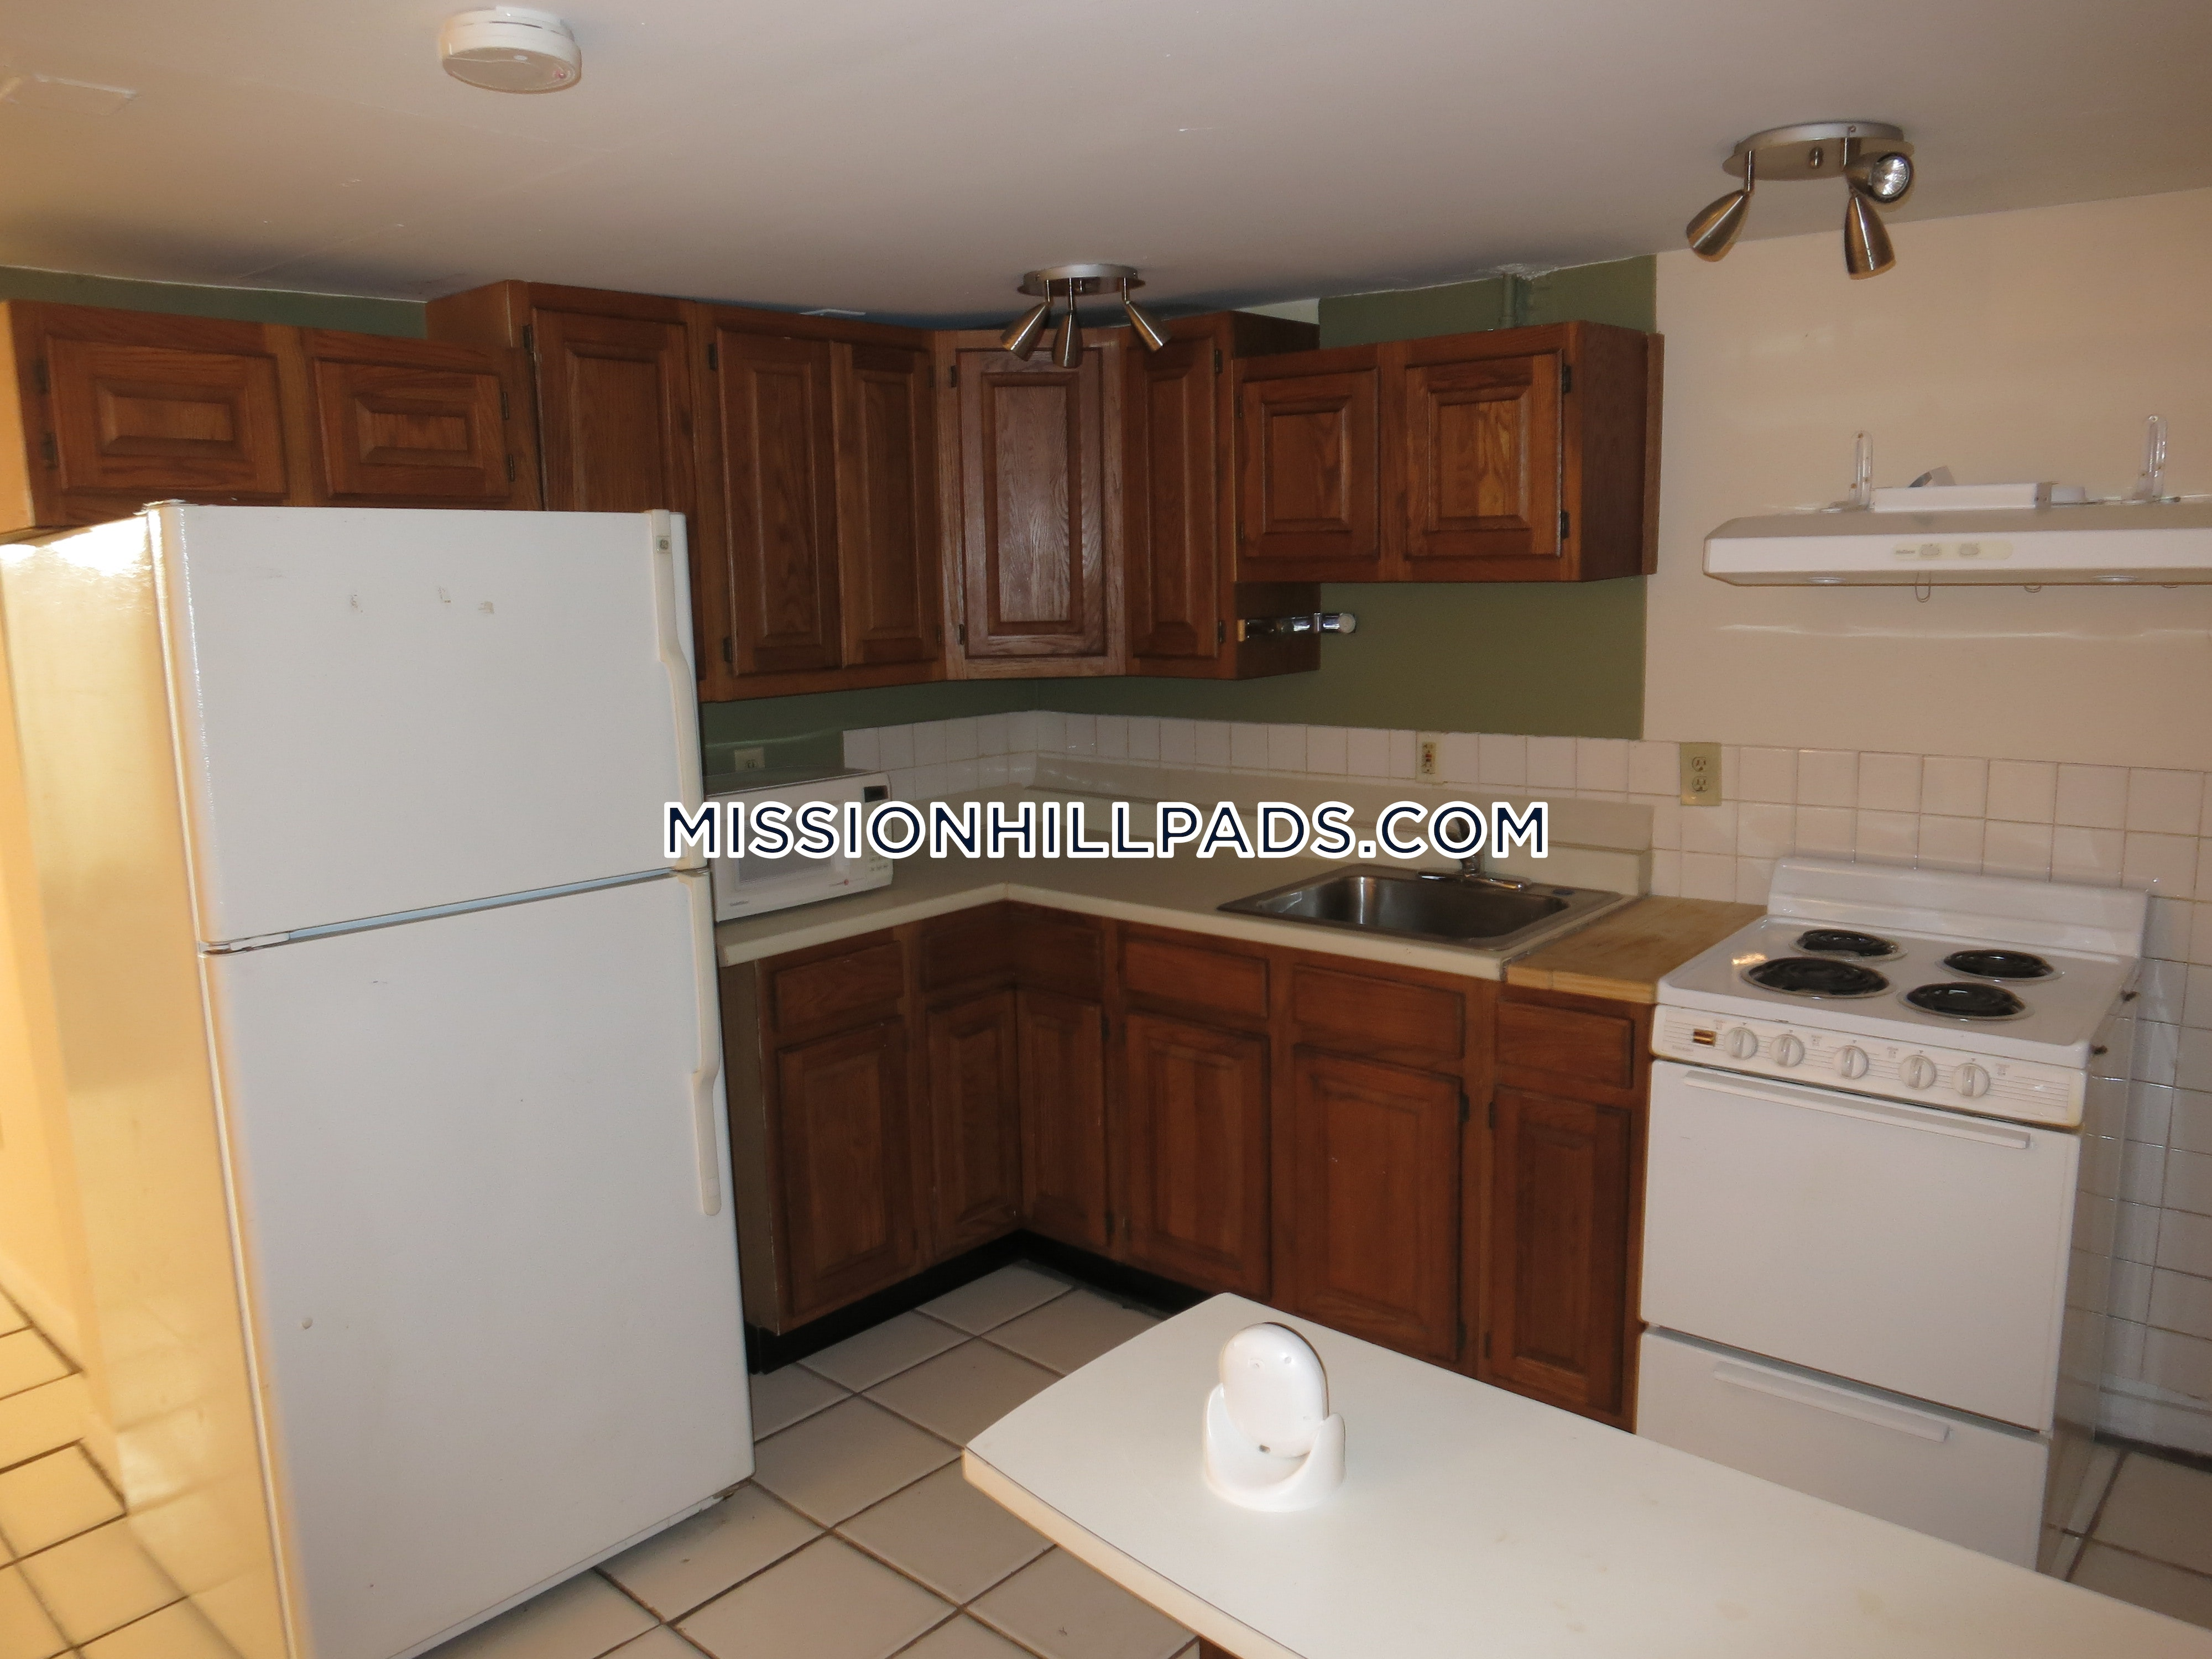 ... Exceptional 1 Bedroom Apartment In Boston Mission Hill. $1,700   Boston    Mission Hill ...